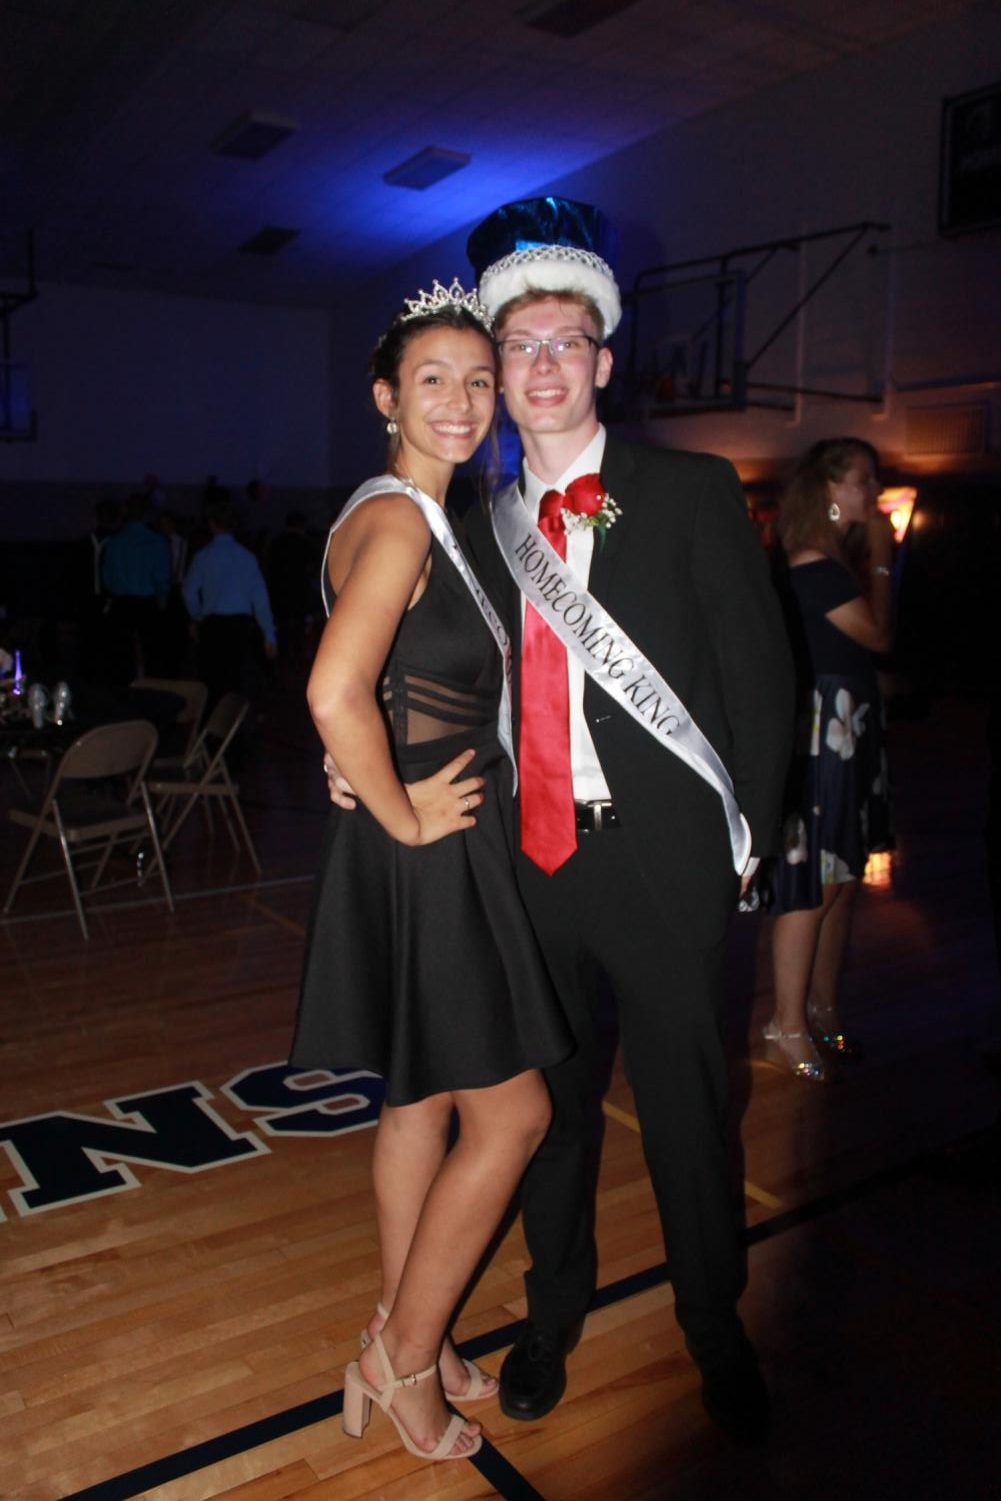 Nina+DiPlacido+%28left%29+and+Patrick+Montgomery+%28right%29+won+Homecoming+King+and+Queen